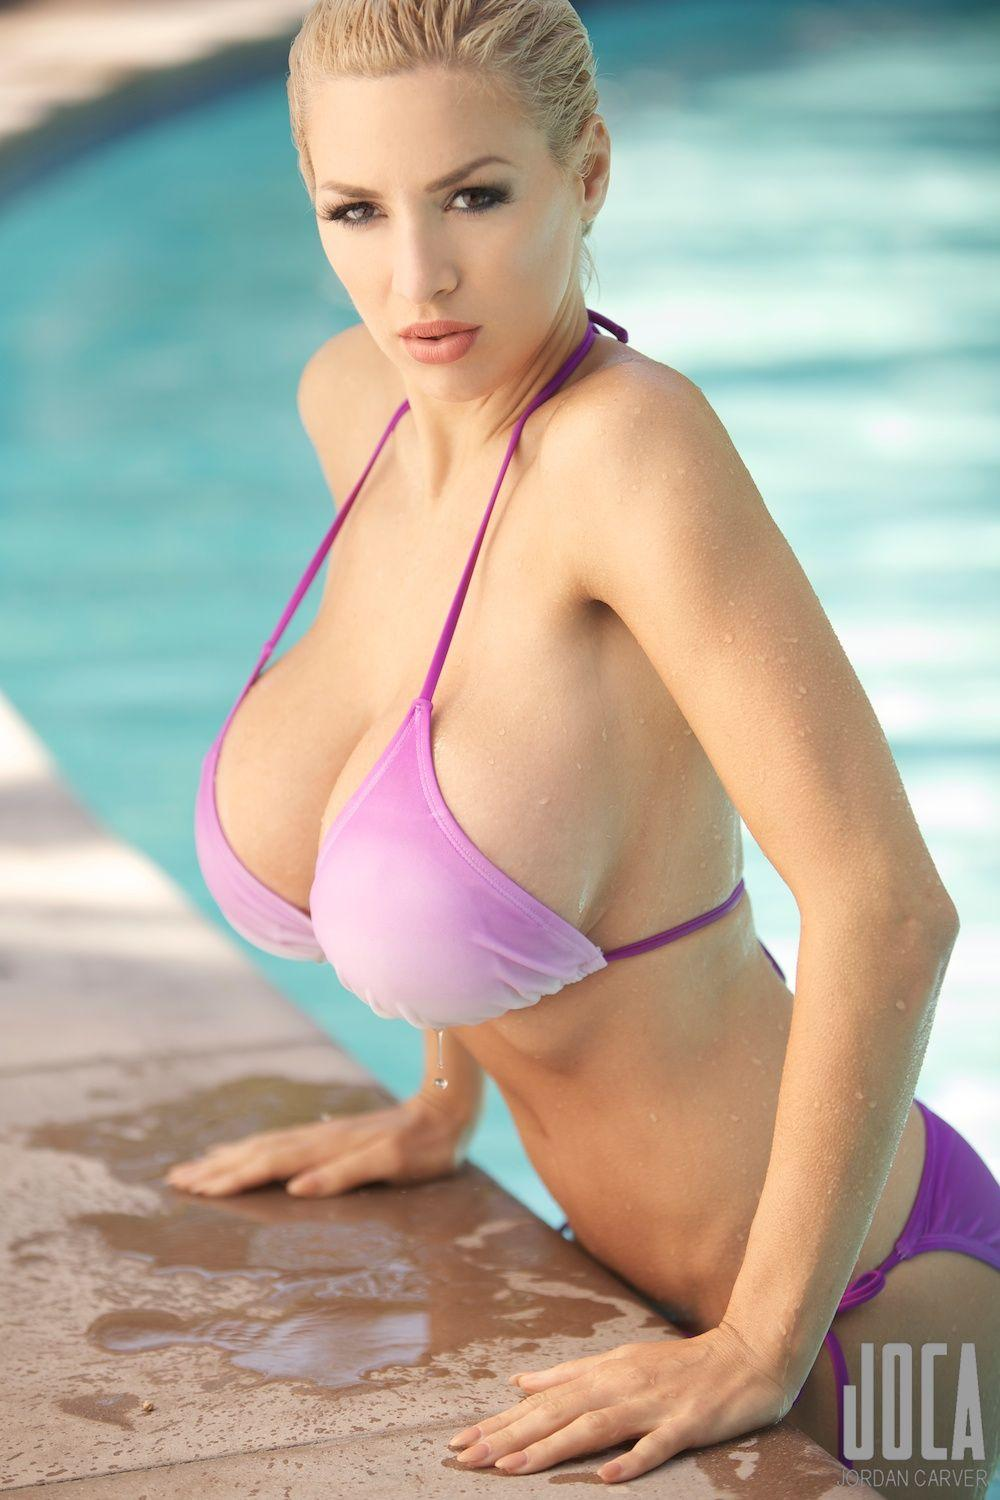 Jordan Carver Sexy in Pink Bikini Coming Out of Pool  by crenk